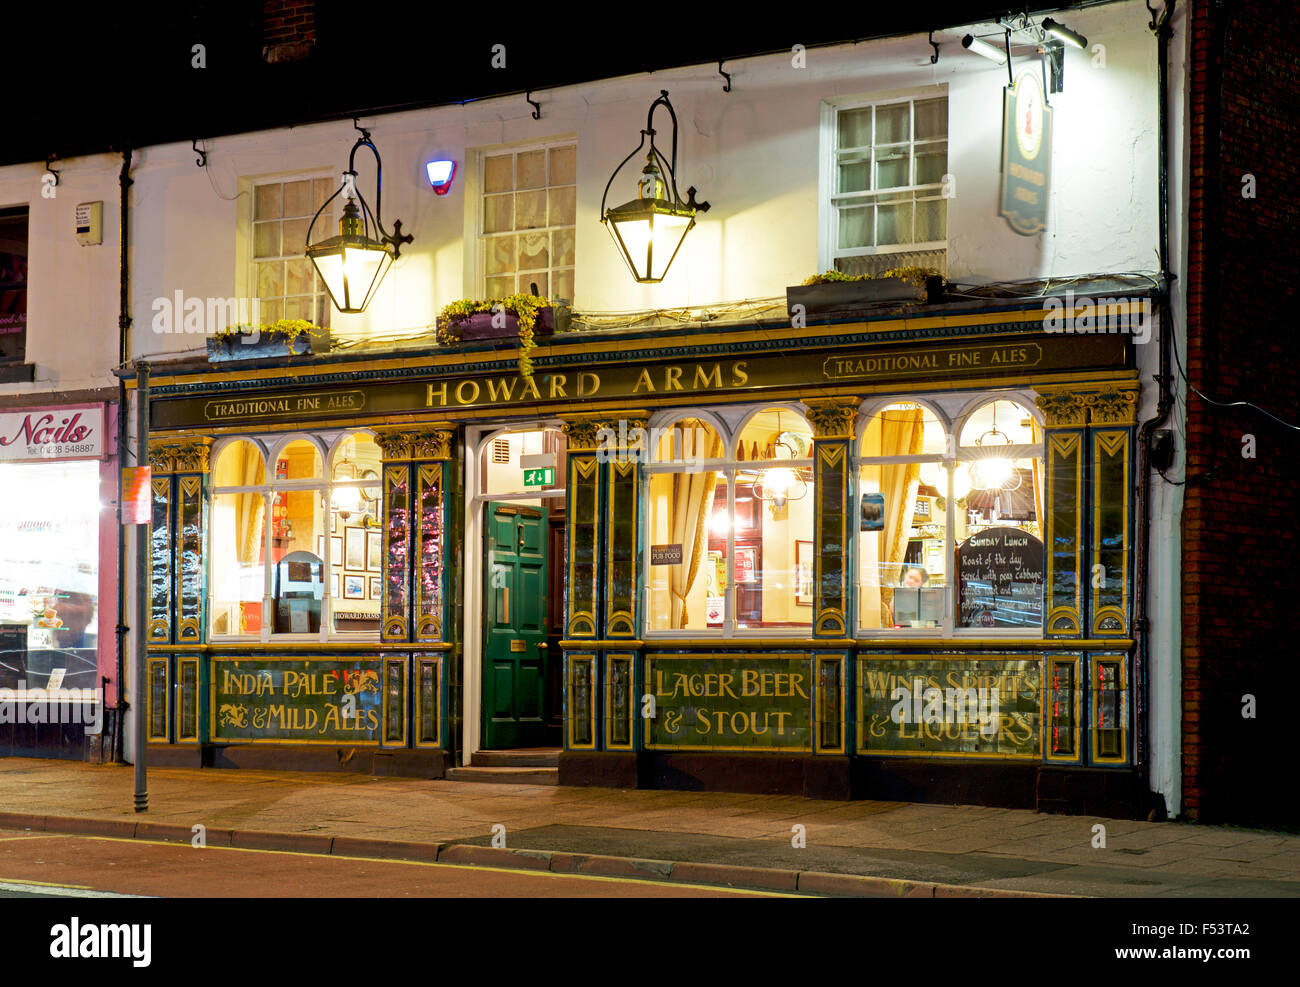 The Howard Arms on Lowther Street, in Carlisle, Cumbria, England UK - Stock Image